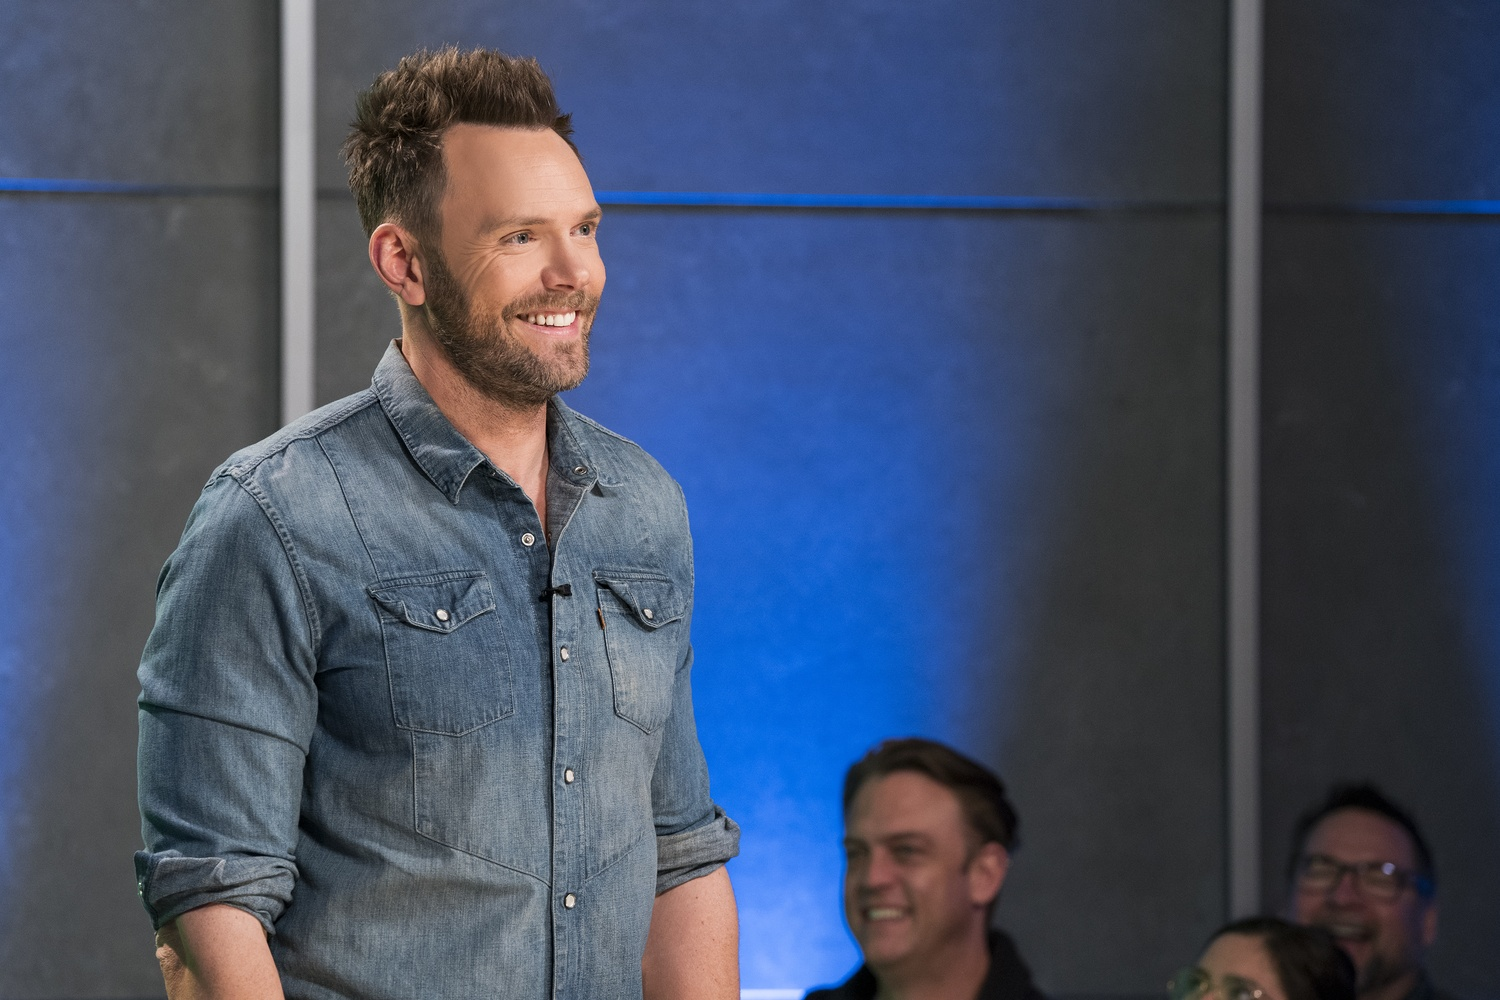 Joel McHale on the set of his new, eponymous Netflix comedy series.